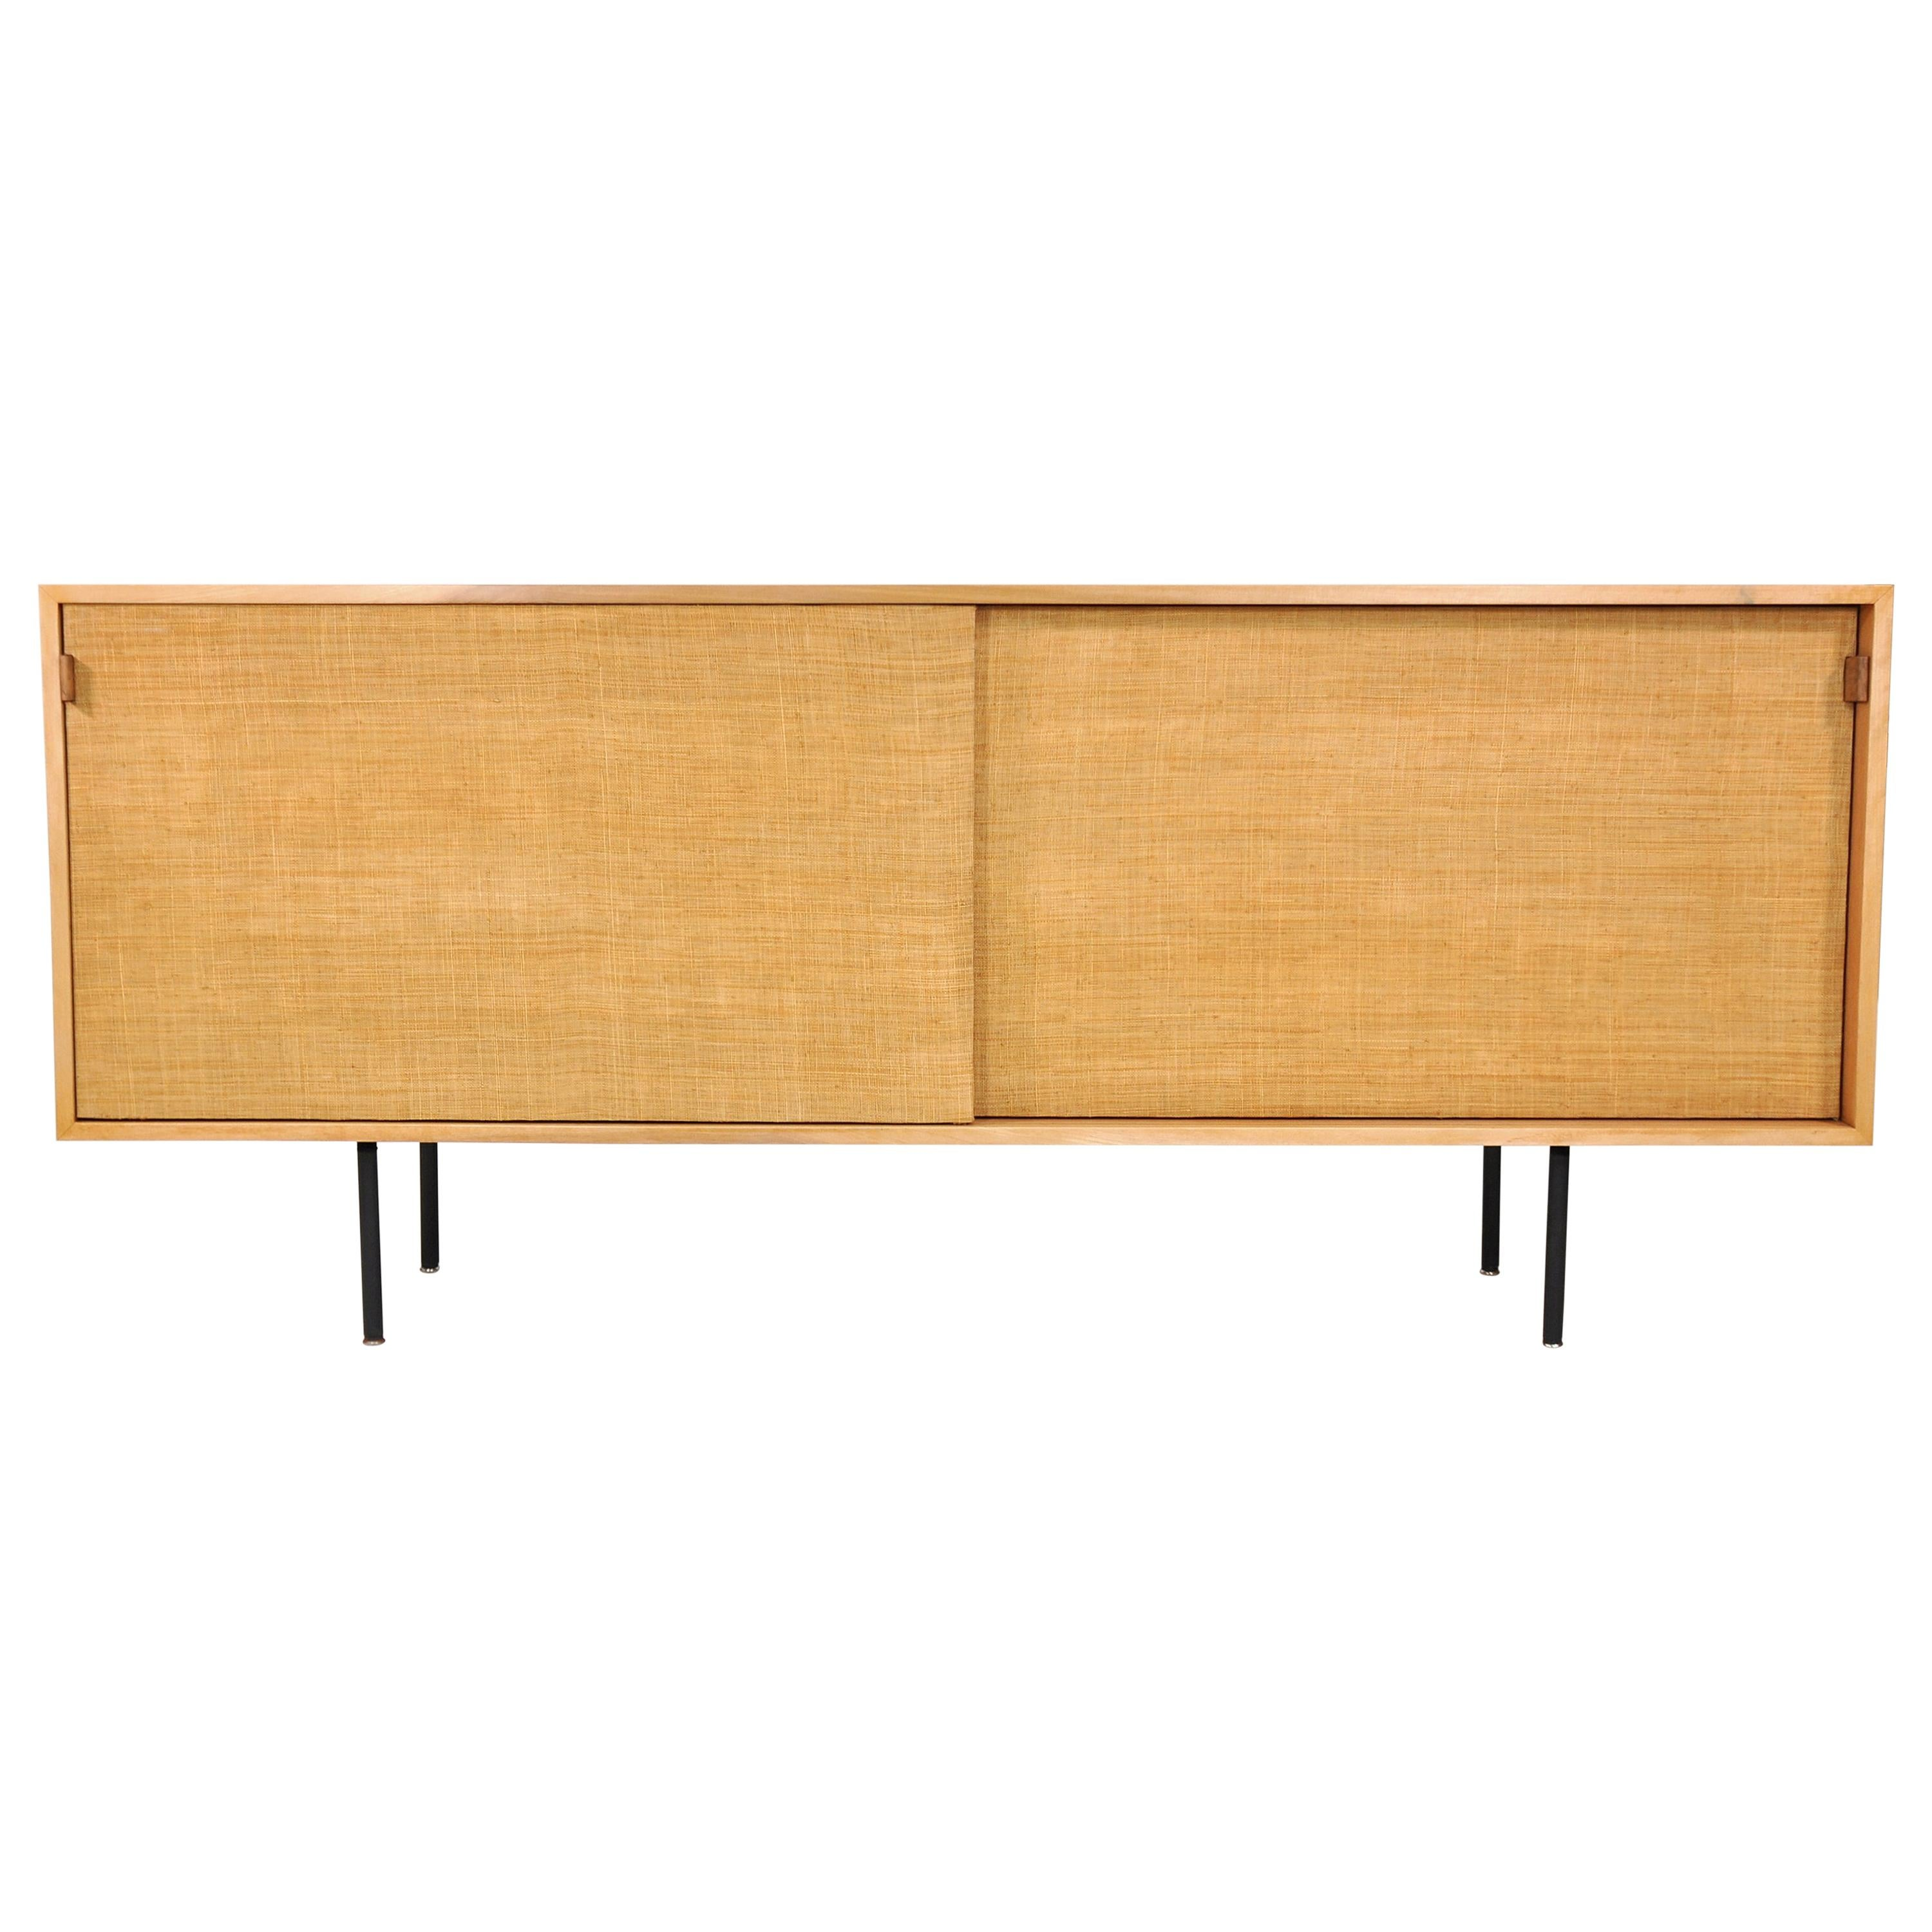 Florence Knoll Maple and Seagrass Credenza